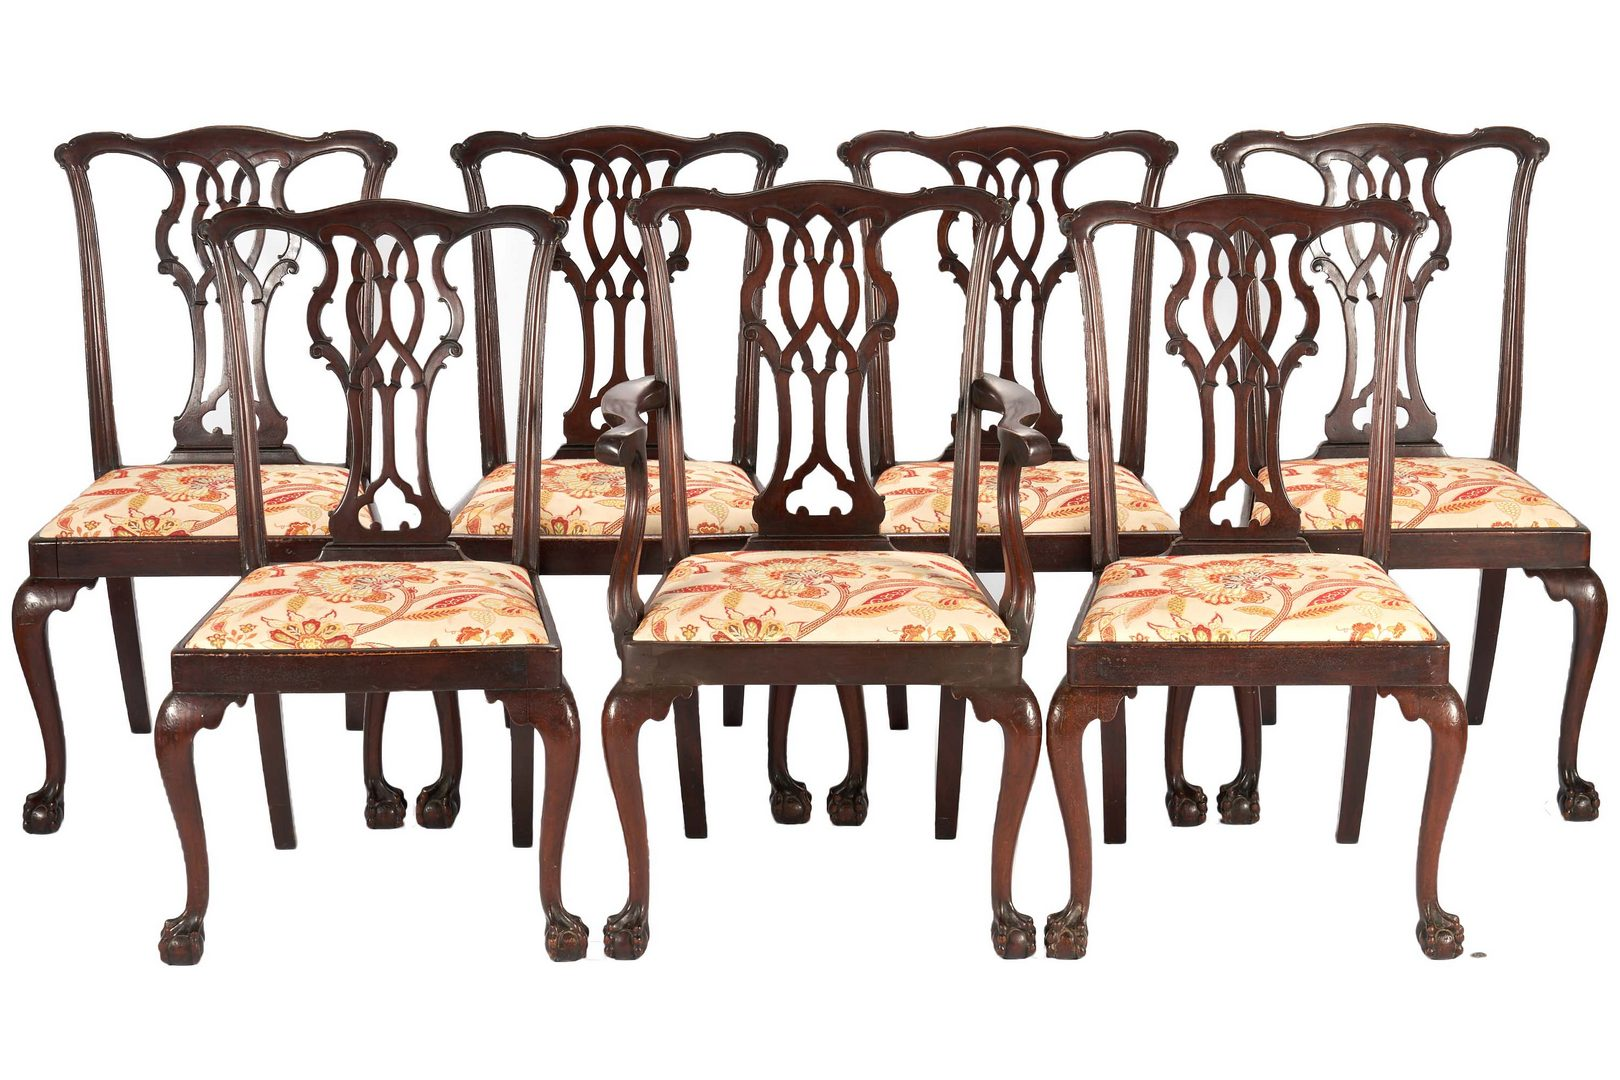 Lot 152: Set of 7 Chippendale Style Carved Mahogany Dining Chairs